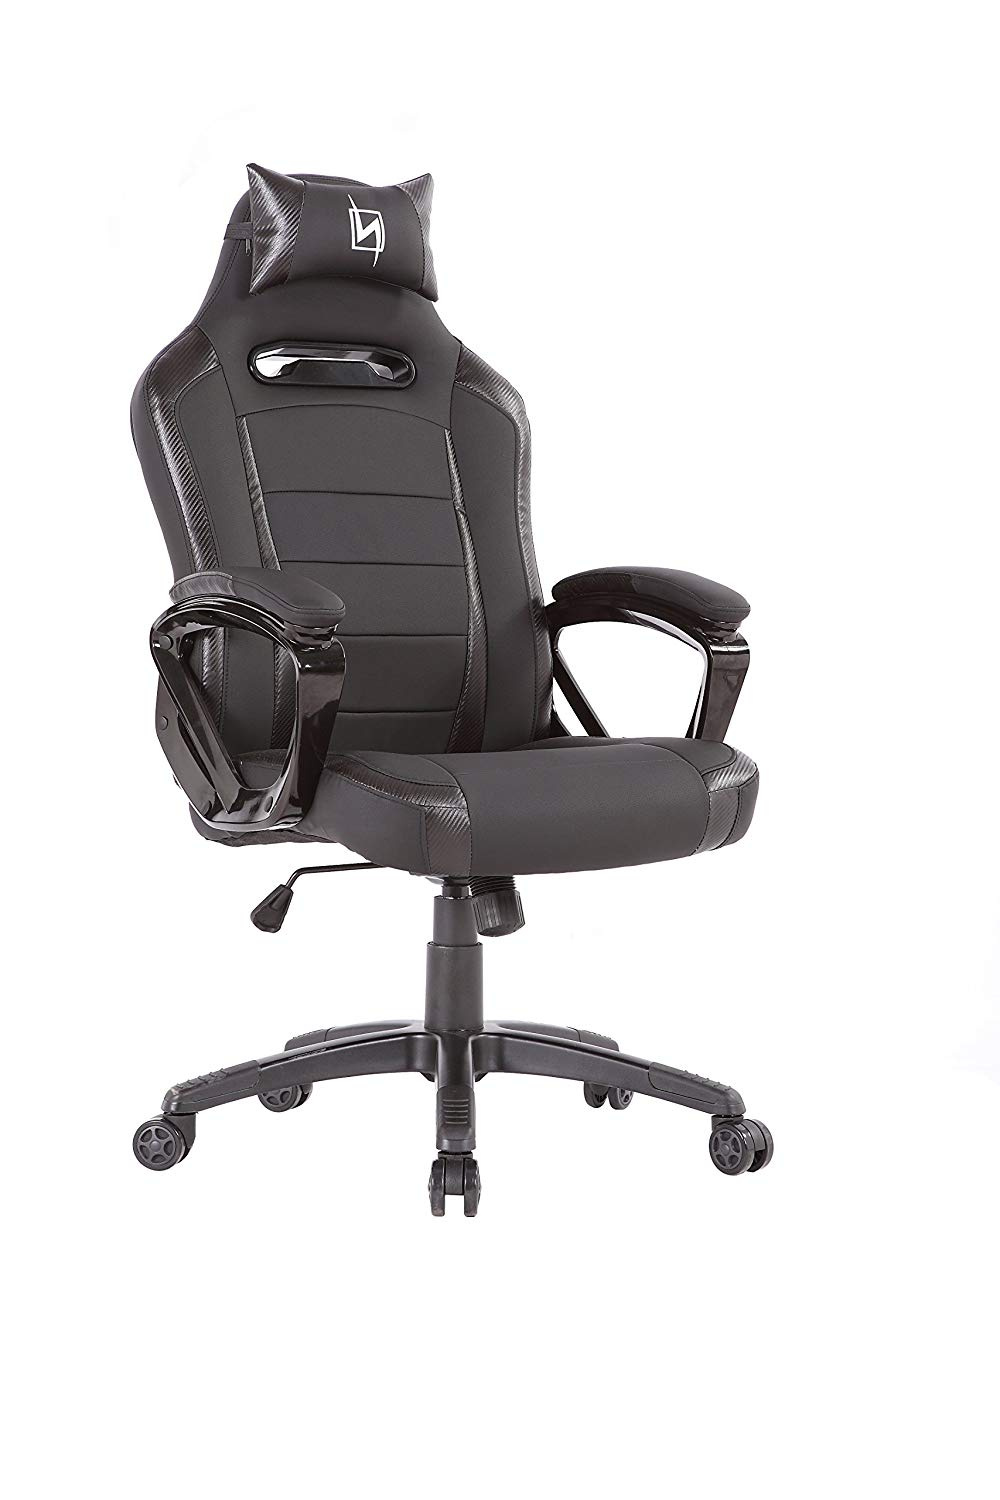 N Seat PRO 300 Series Gaming Chair - $159 - $40.99 off or 21%